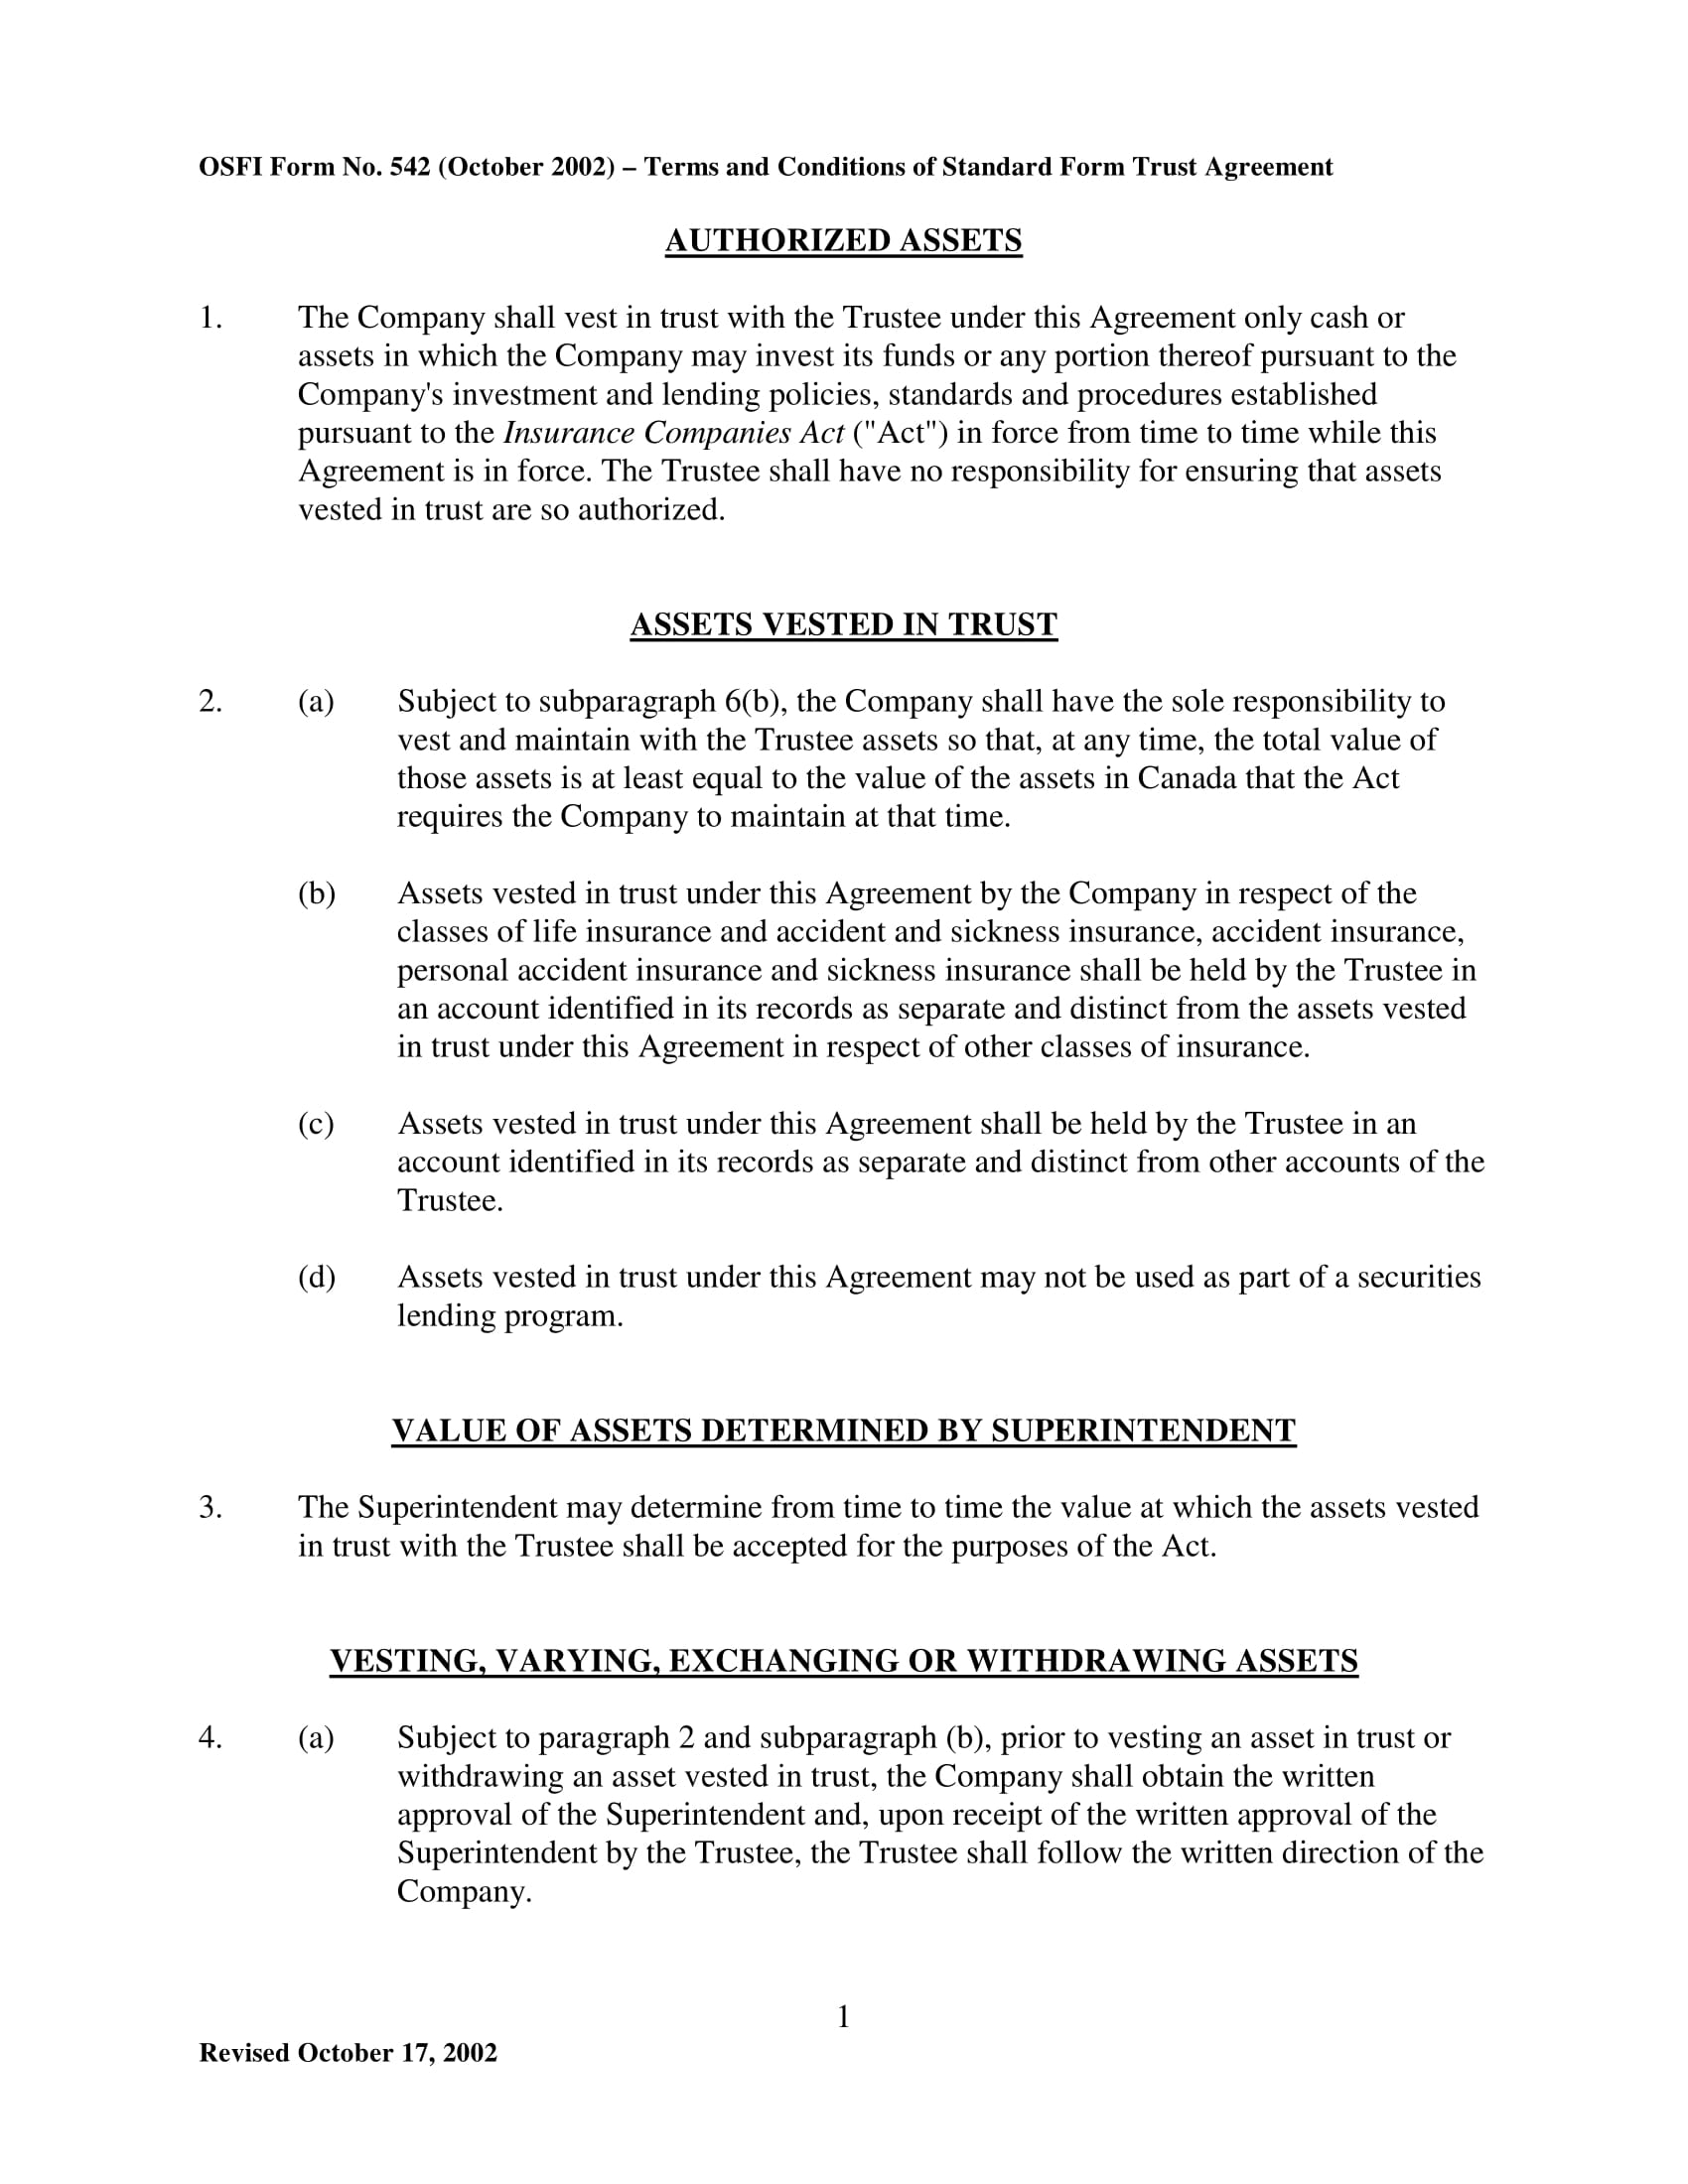 5 Trust Agreement Contract Forms Pdf